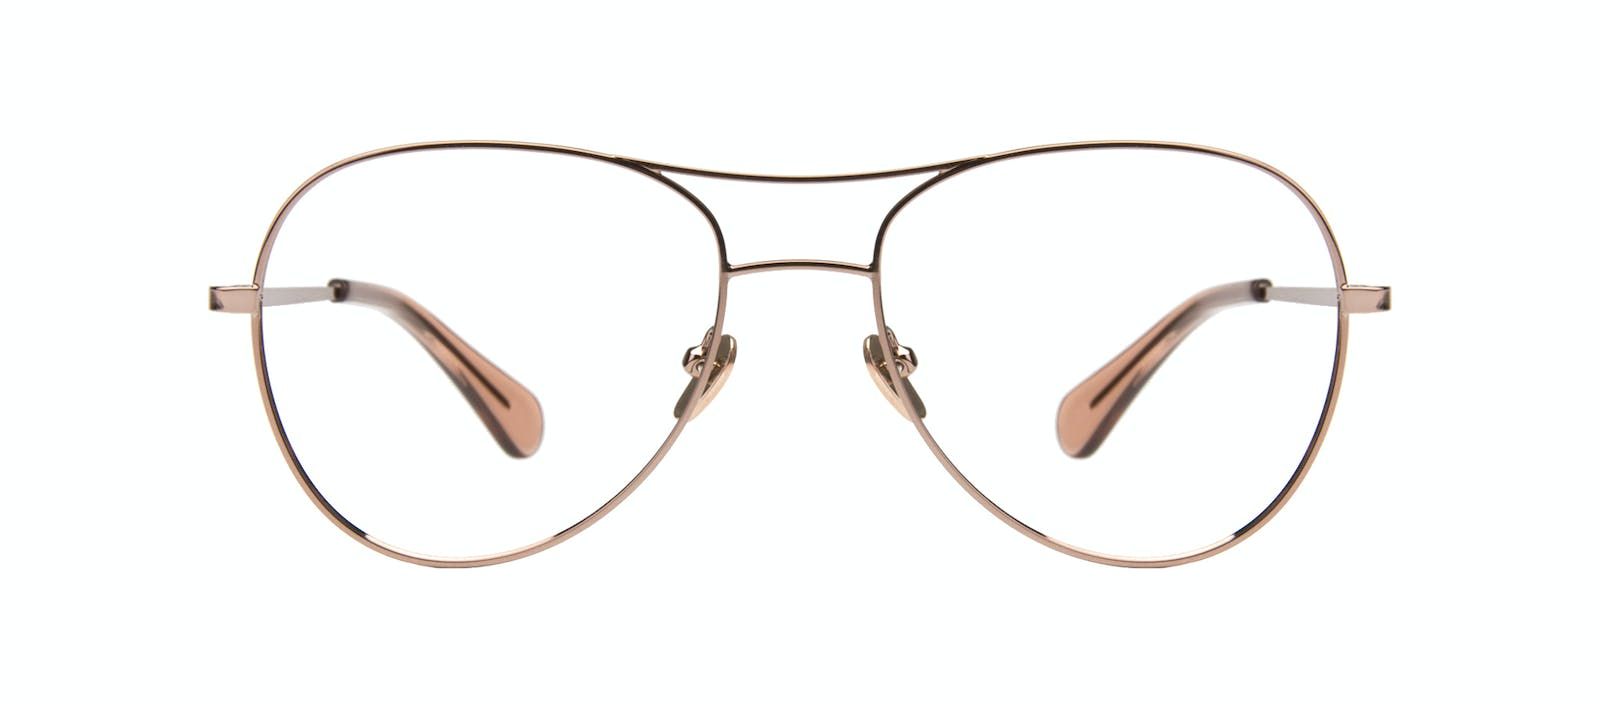 fa53a4ff6c Affordable Fashion Glasses Aviator Eyeglasses Women Want Rose Gold Front